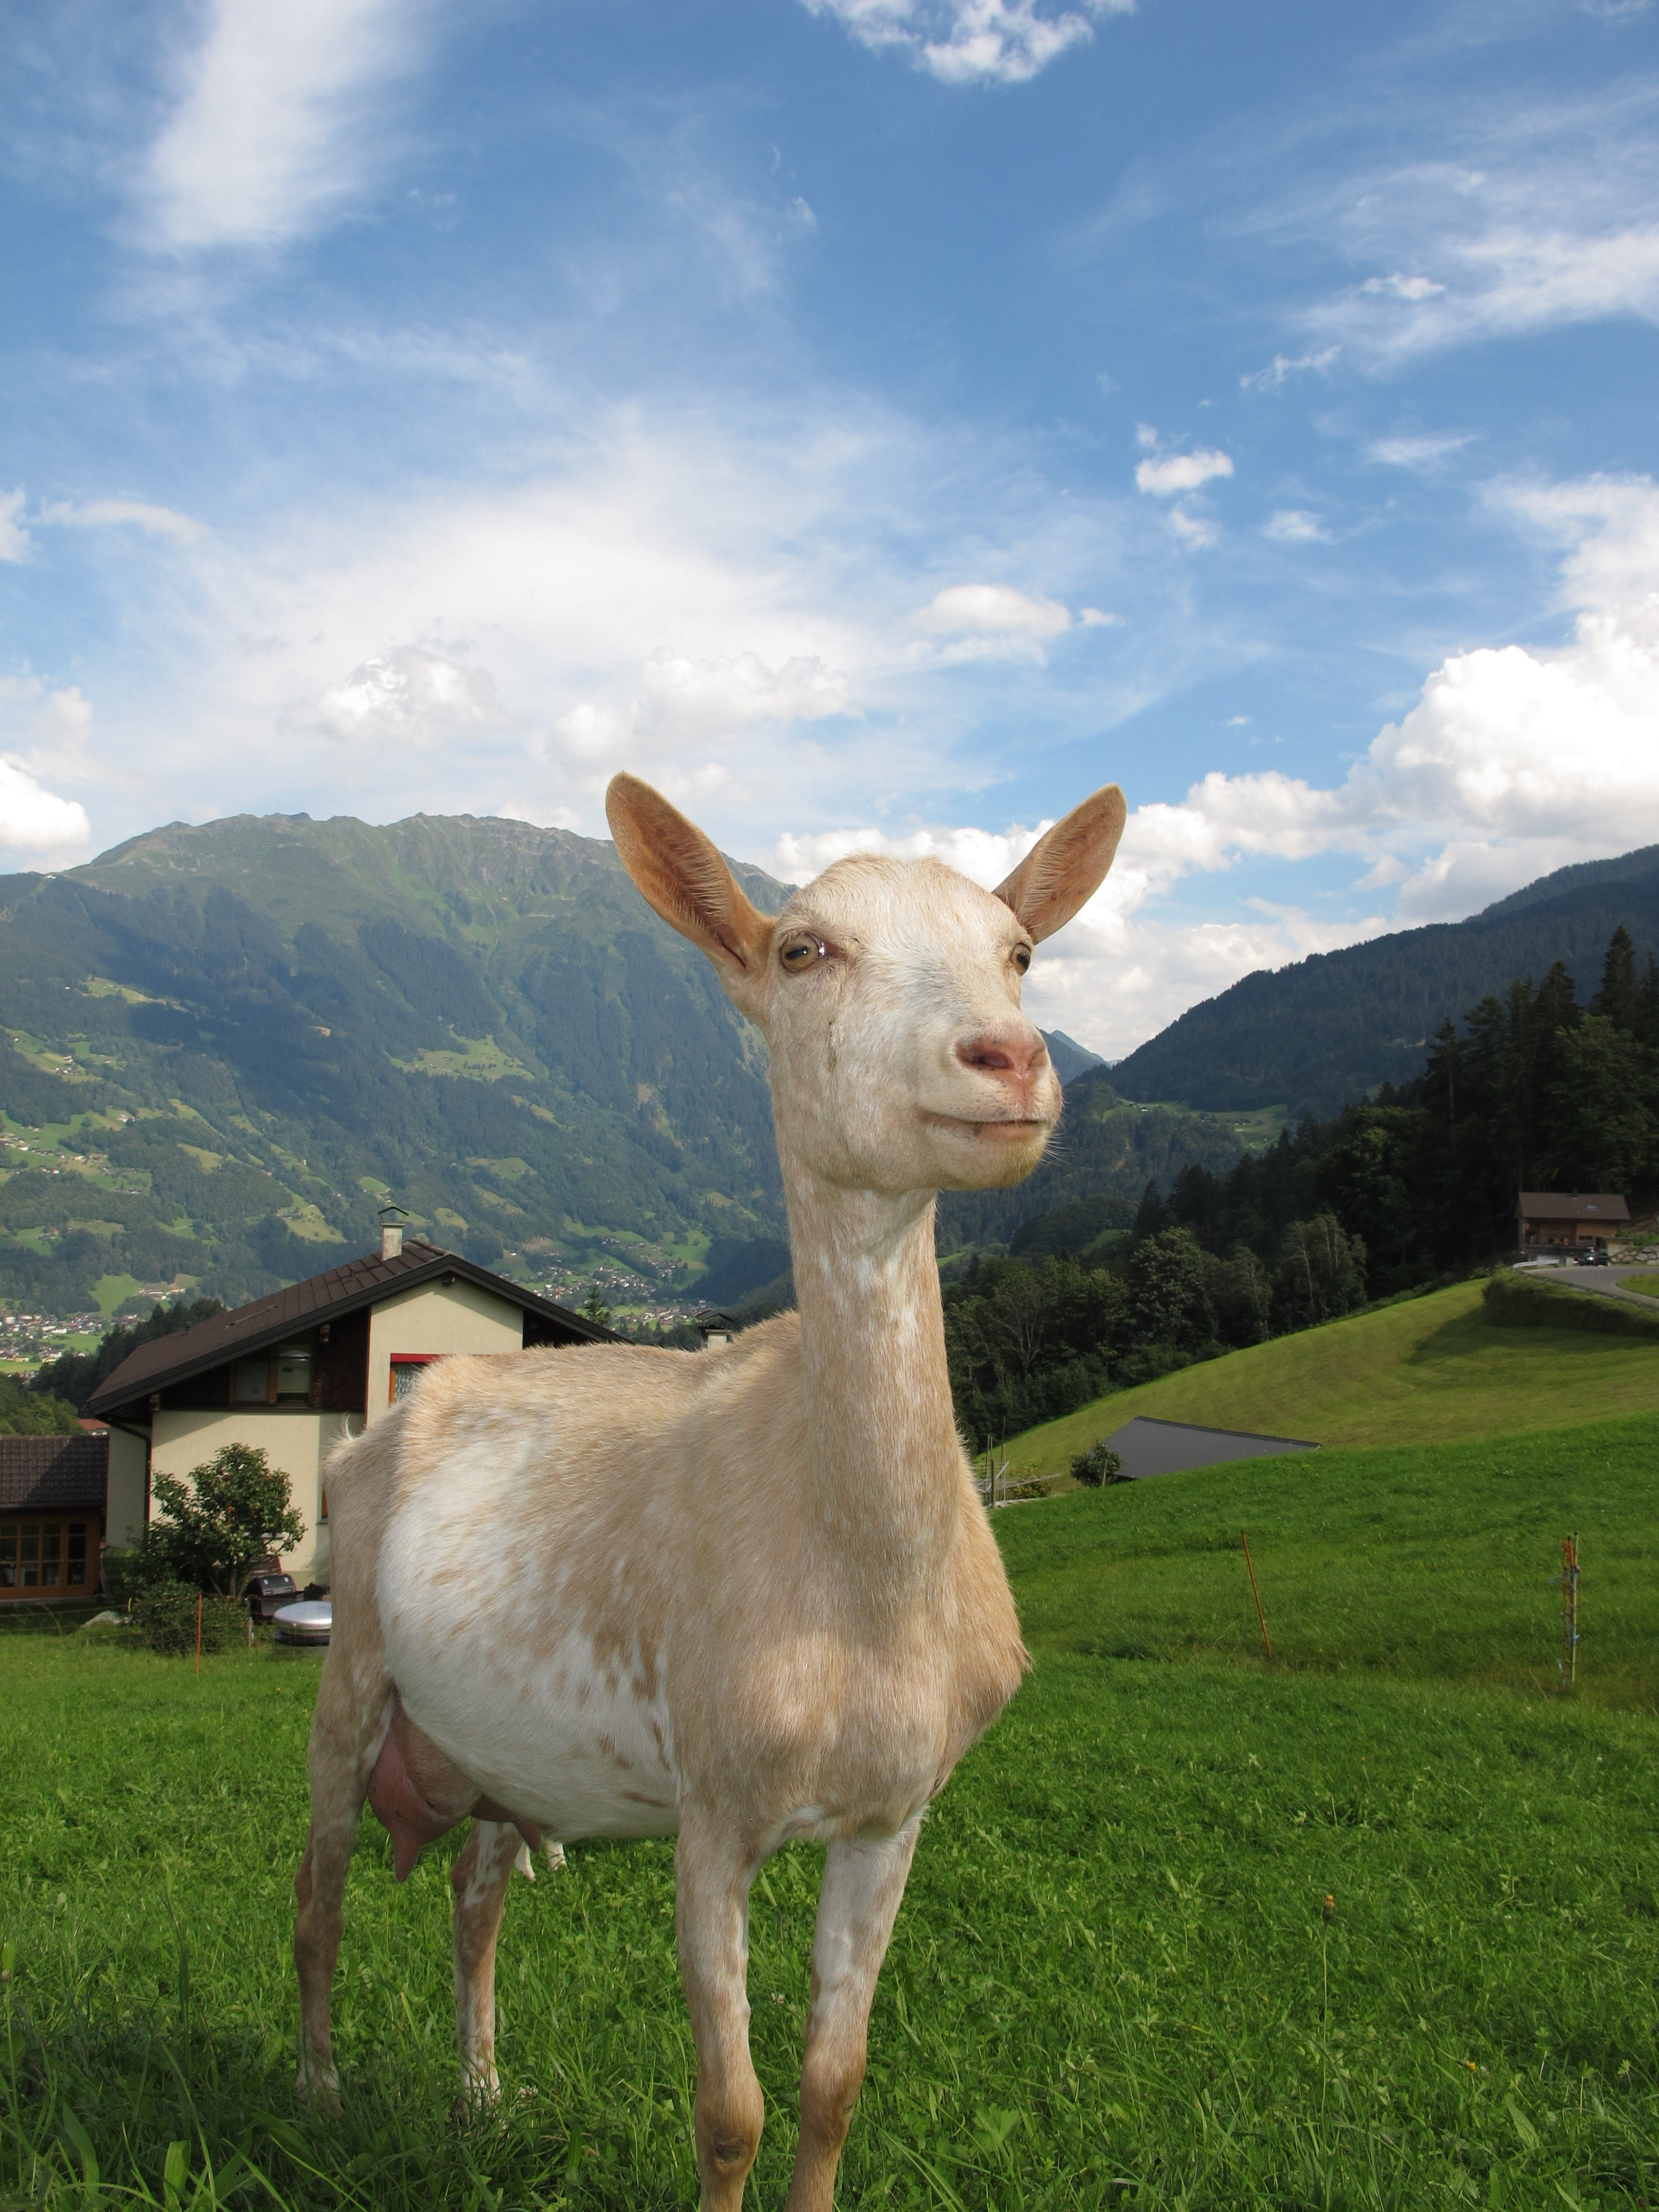 Cool Cute Wallpaper For Iphone White Goat Eating Grass During Daytime 183 Free Stock Photo